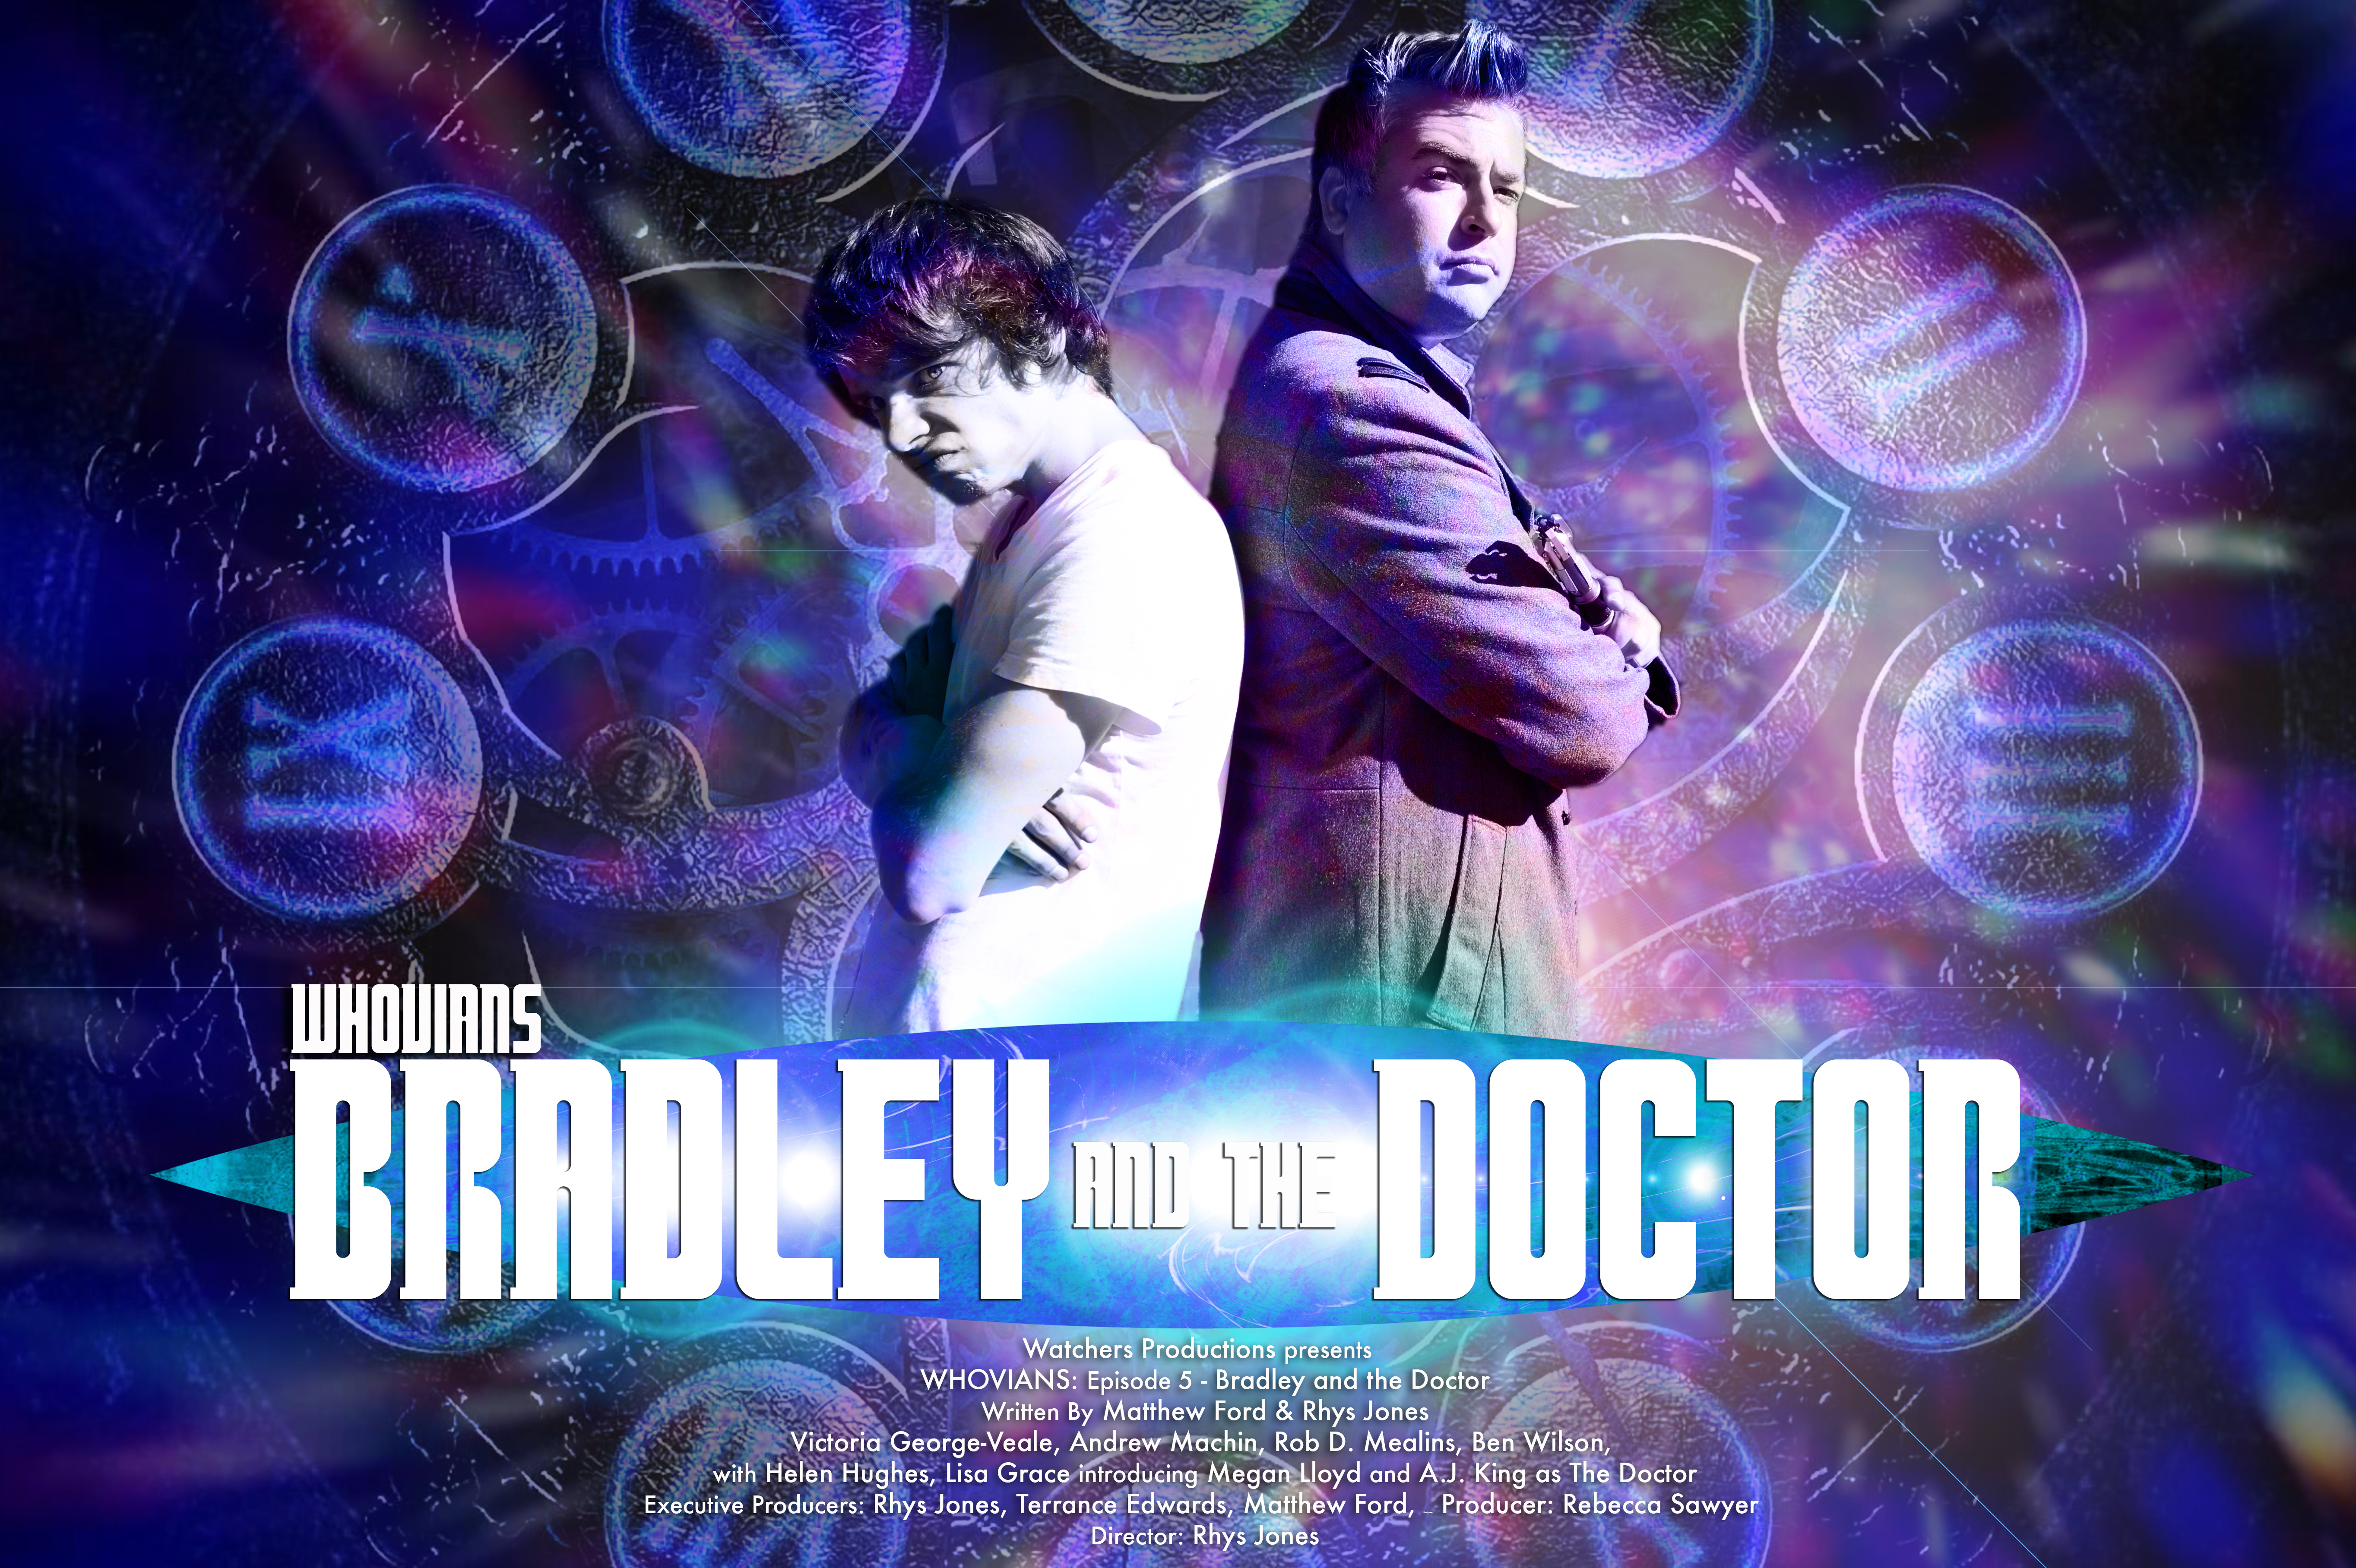 Episode 5 - Bradley and the Doctor